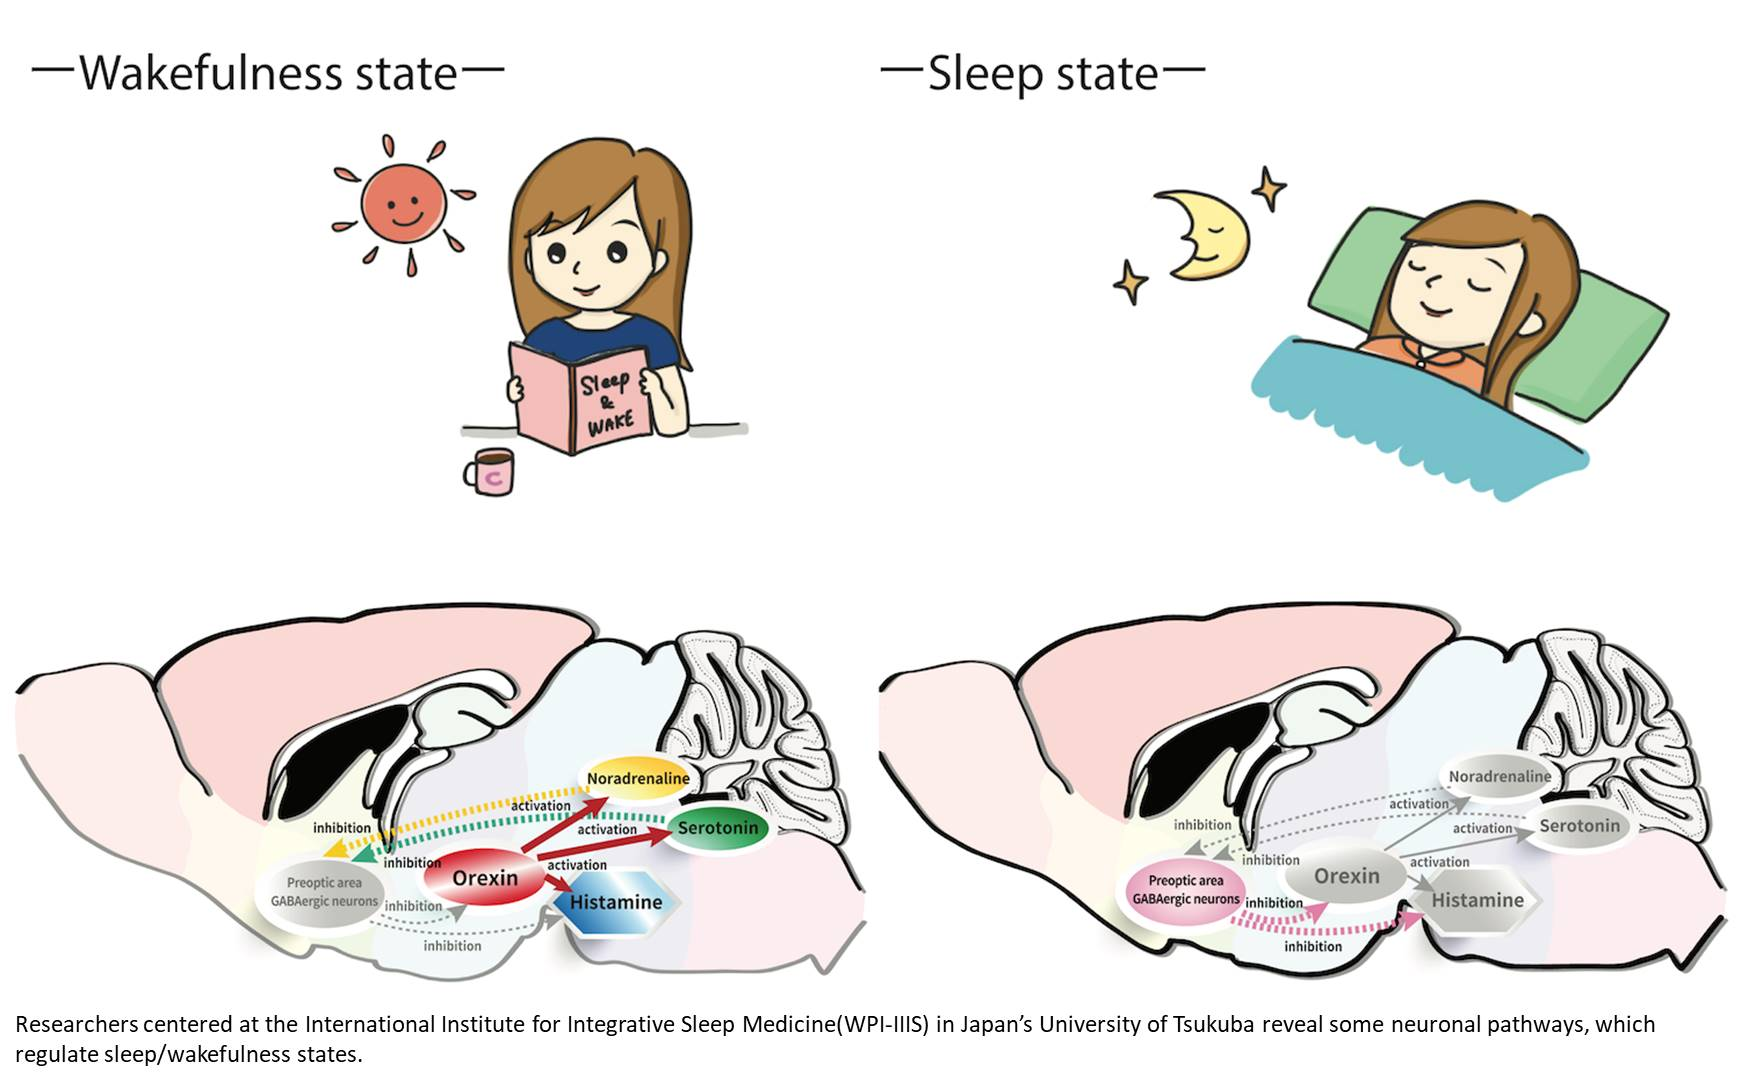 A Peek Into the Interplay Between Sleep and Wakefulness